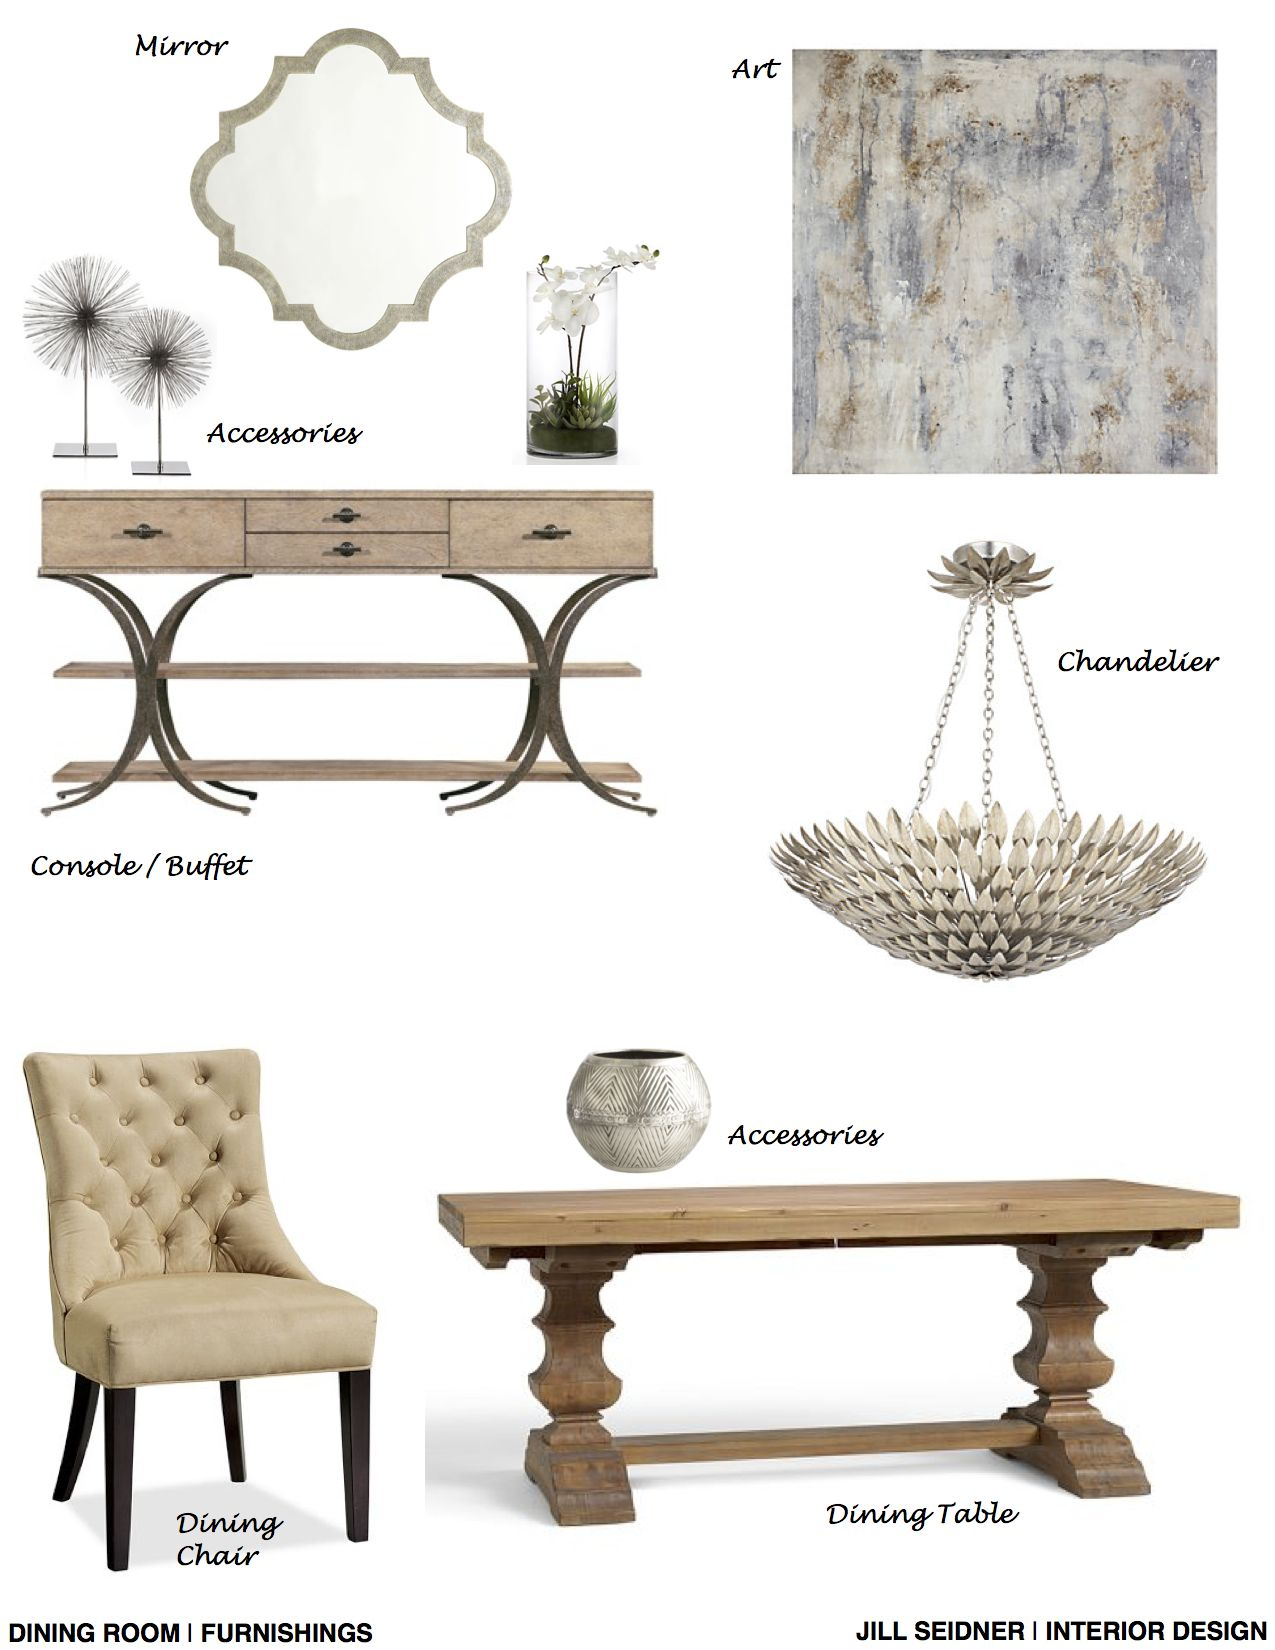 Columbus, GA Online Design Project Dining Room Furnishings Concept ...